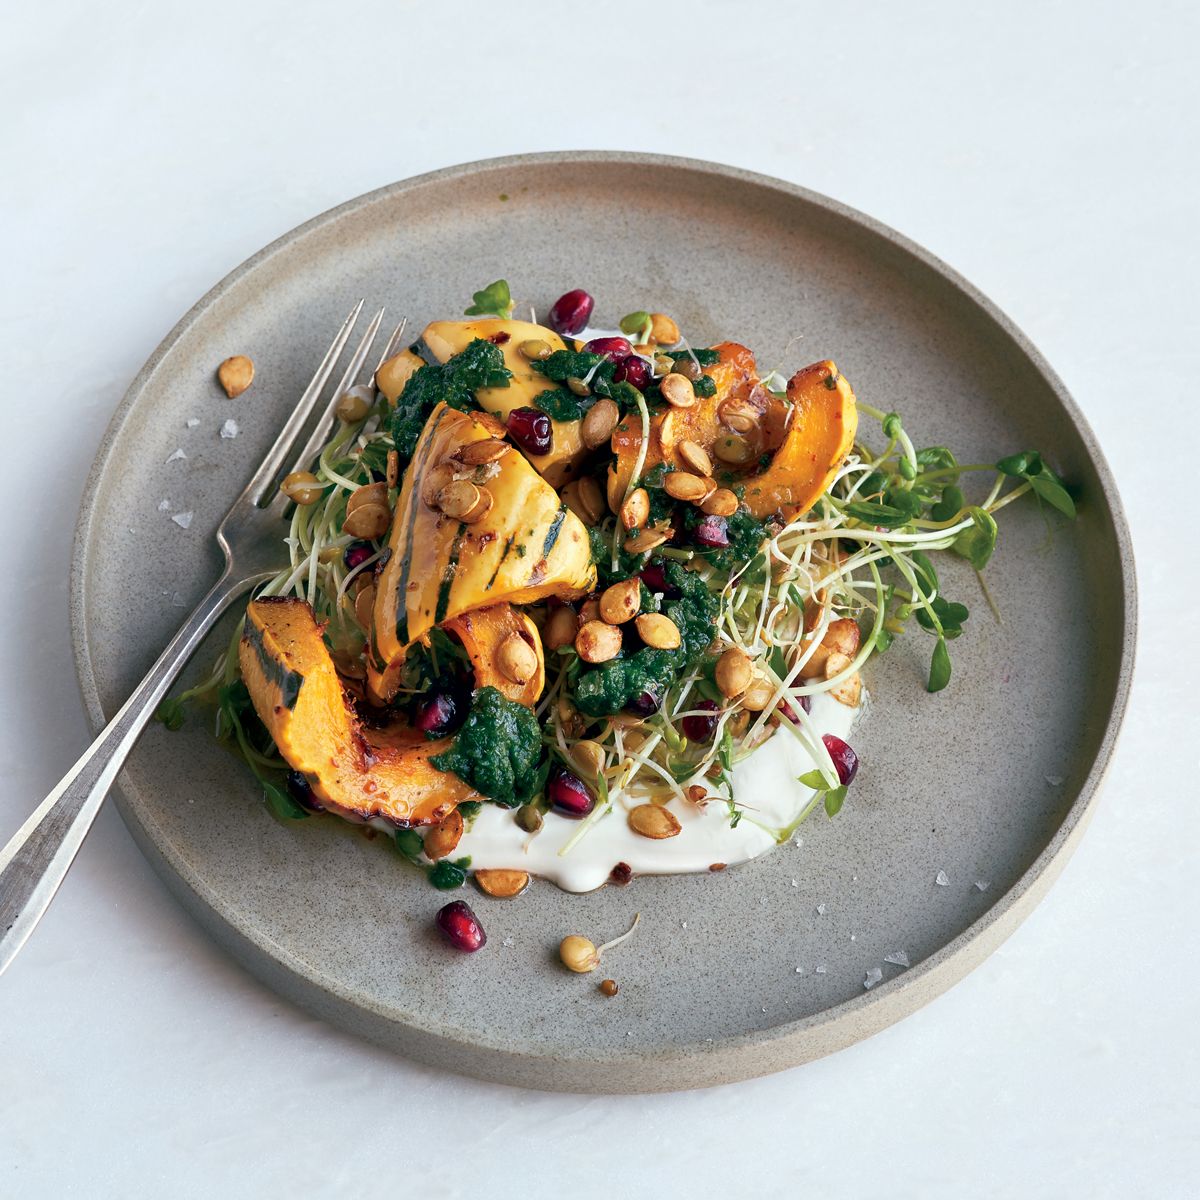 Chef Jessica Koslow's Perfect Squash and Sprouts Bowl